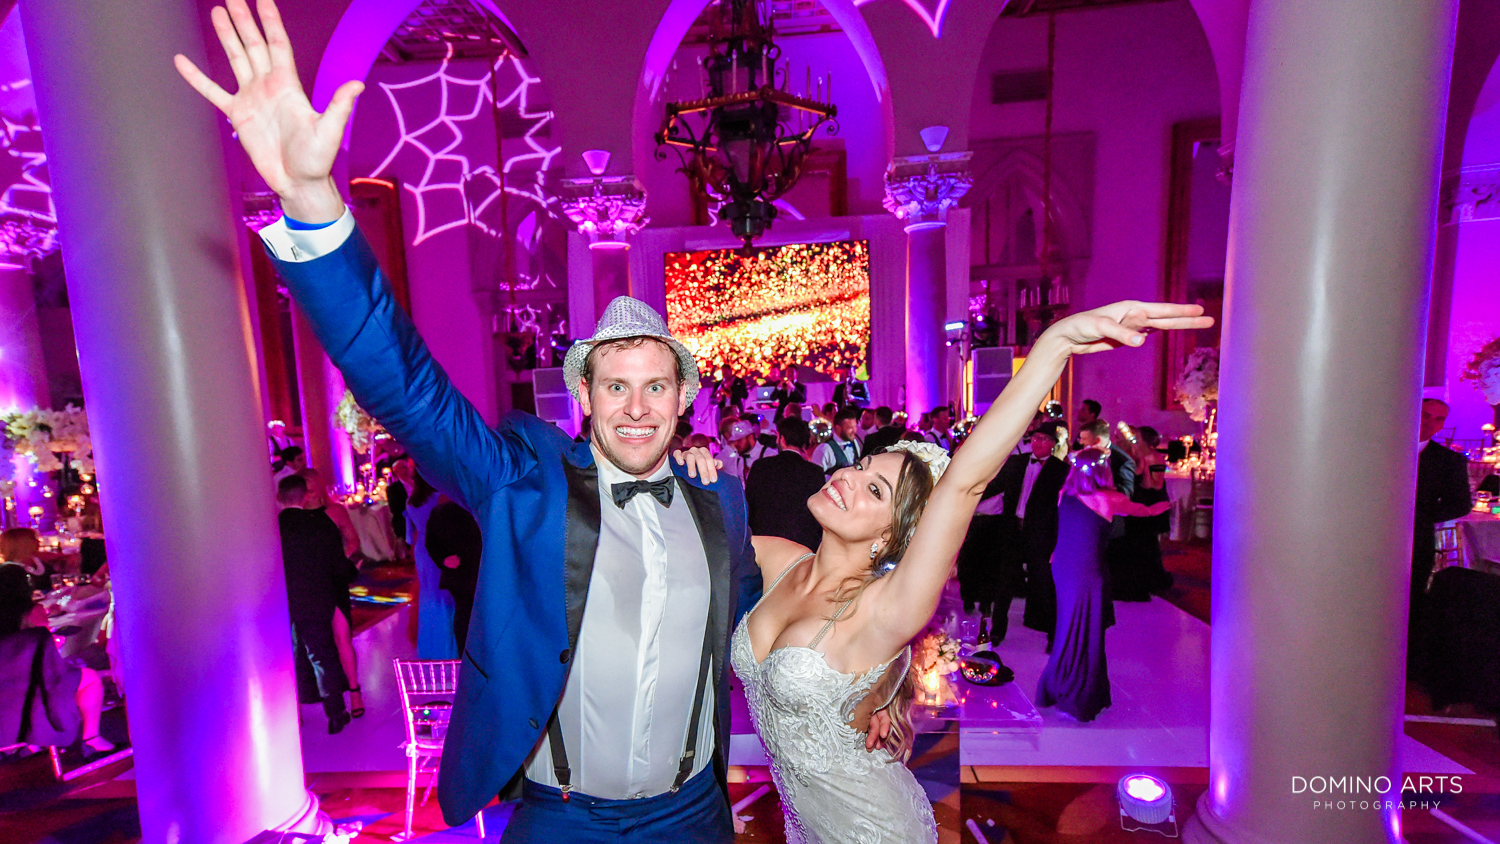 Fun wedding picture of bride and groom at Boca Raton Resort